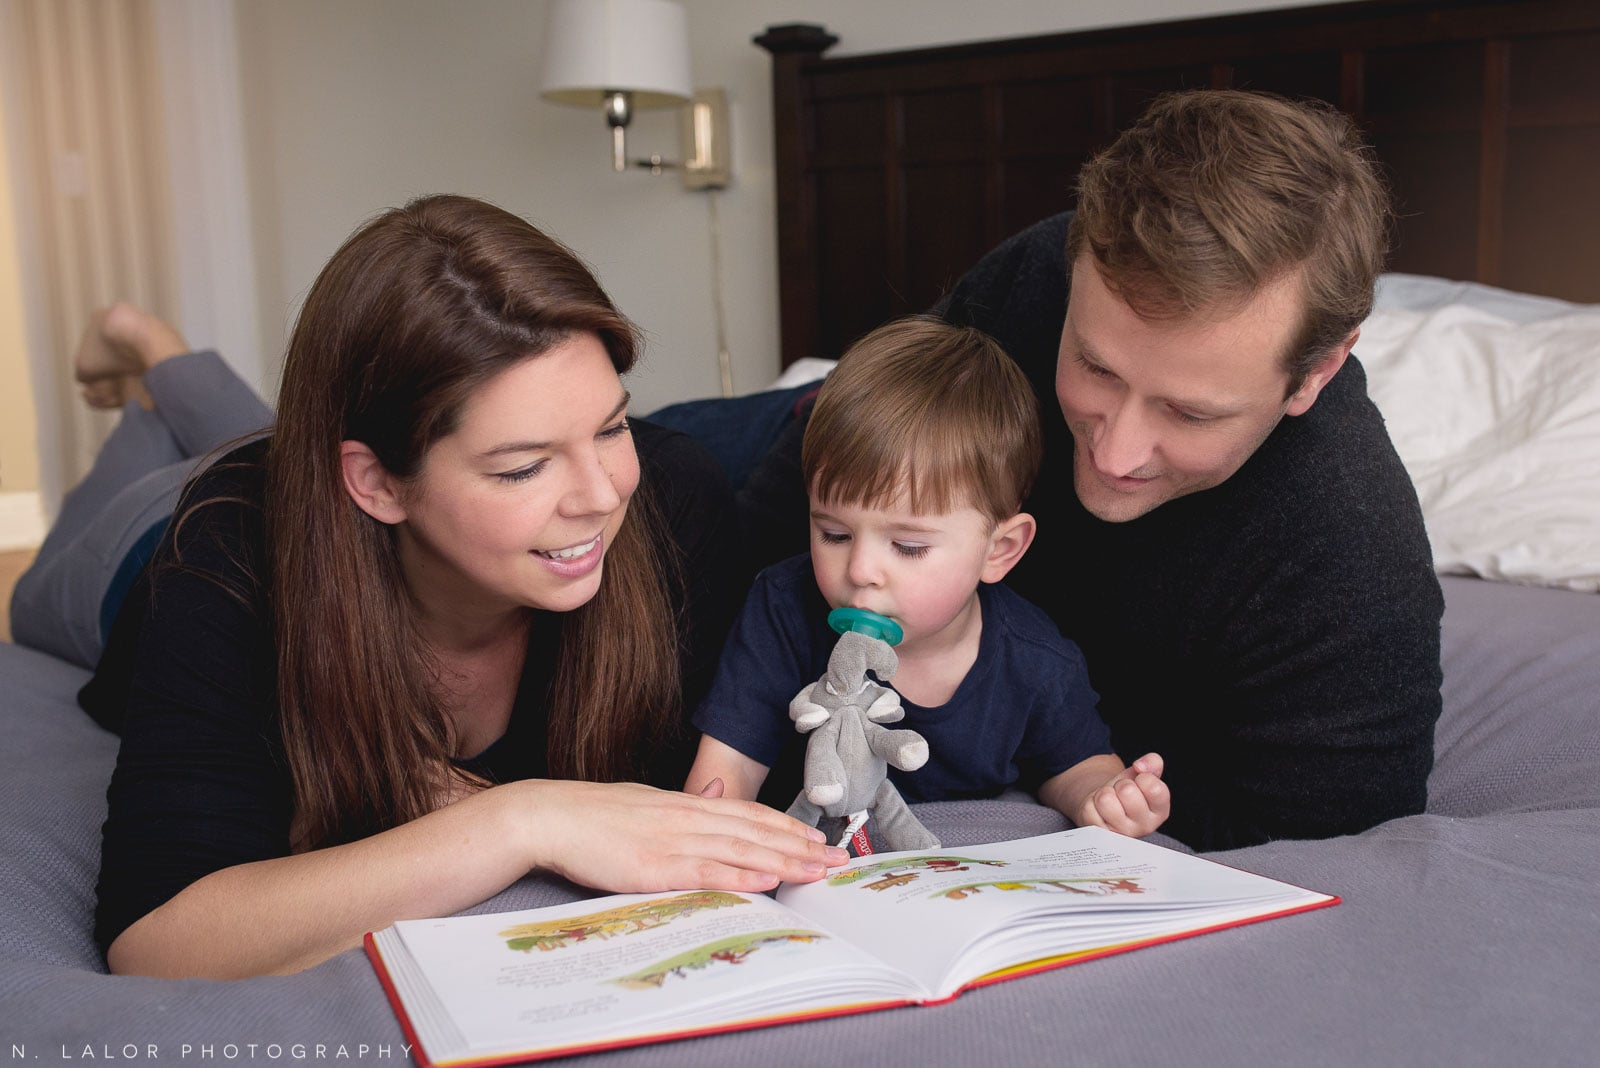 A family reading Curious George book to their toddler. Lifestyle portrait by N. Lalor Photography.